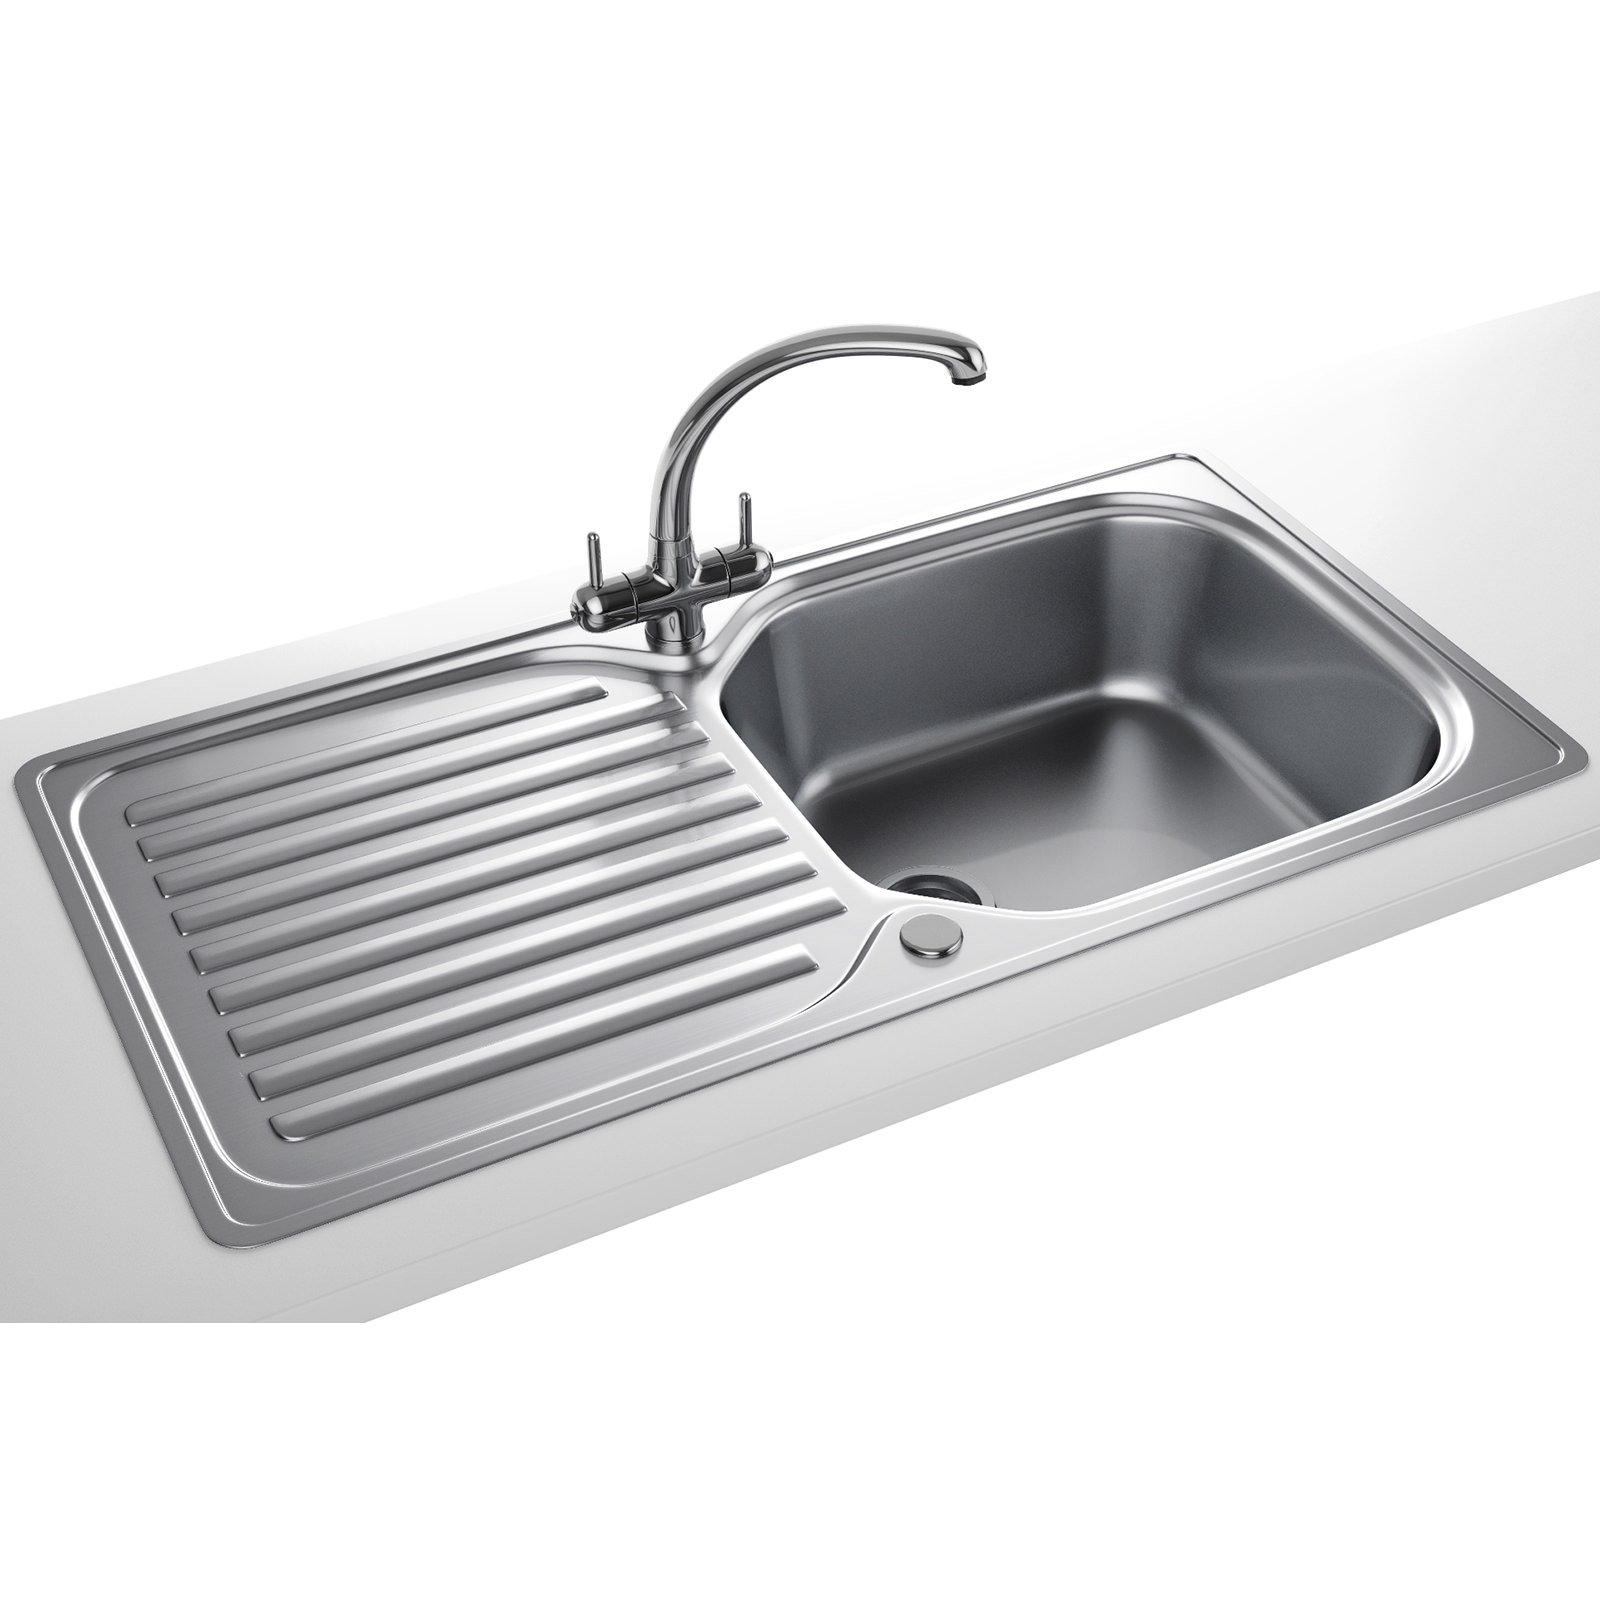 Franke Ss Sinks : Franke Elba Propack ELN 611 96 Stainless Steel Kitchen Sink And Tap